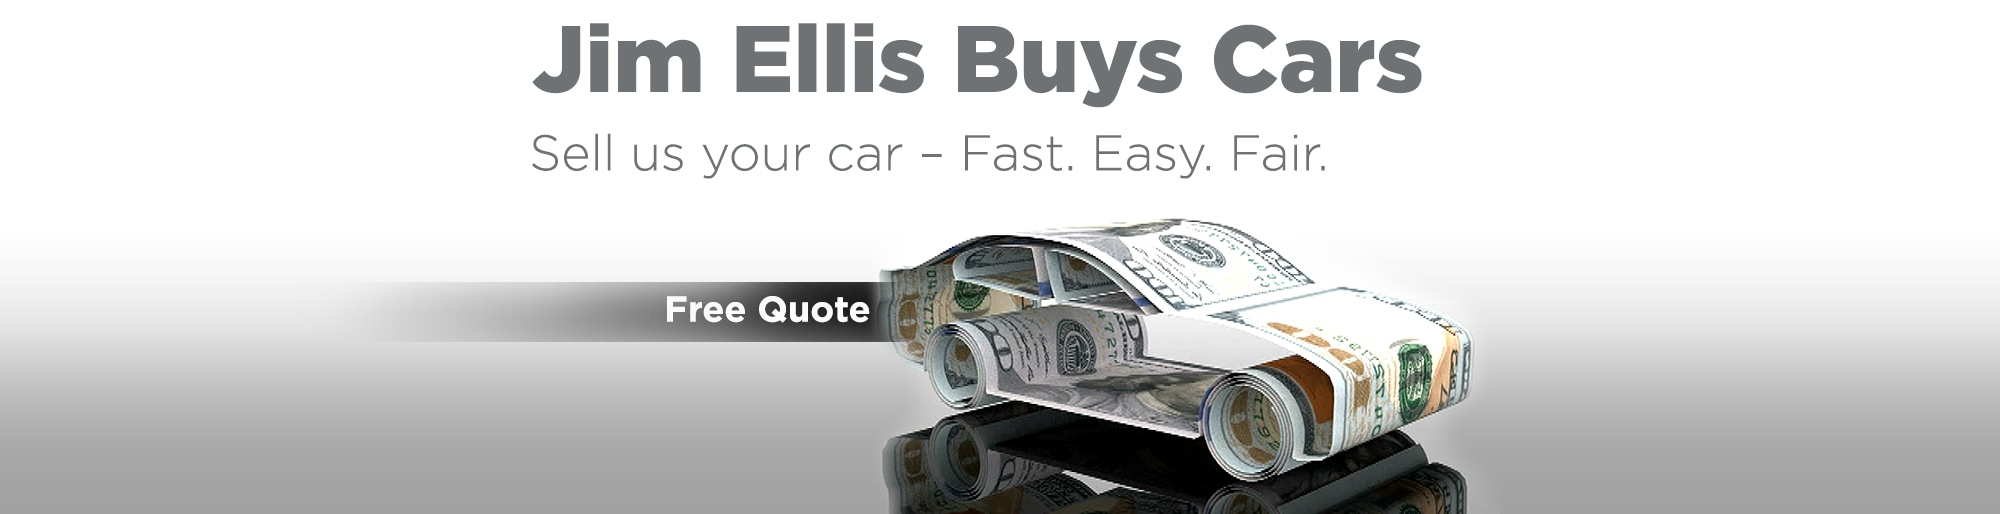 Jim Ellis Chevrolet Atlanta New Used Chevy Car Dealer 2006 Silverado Fuel Filter Location Previous Next